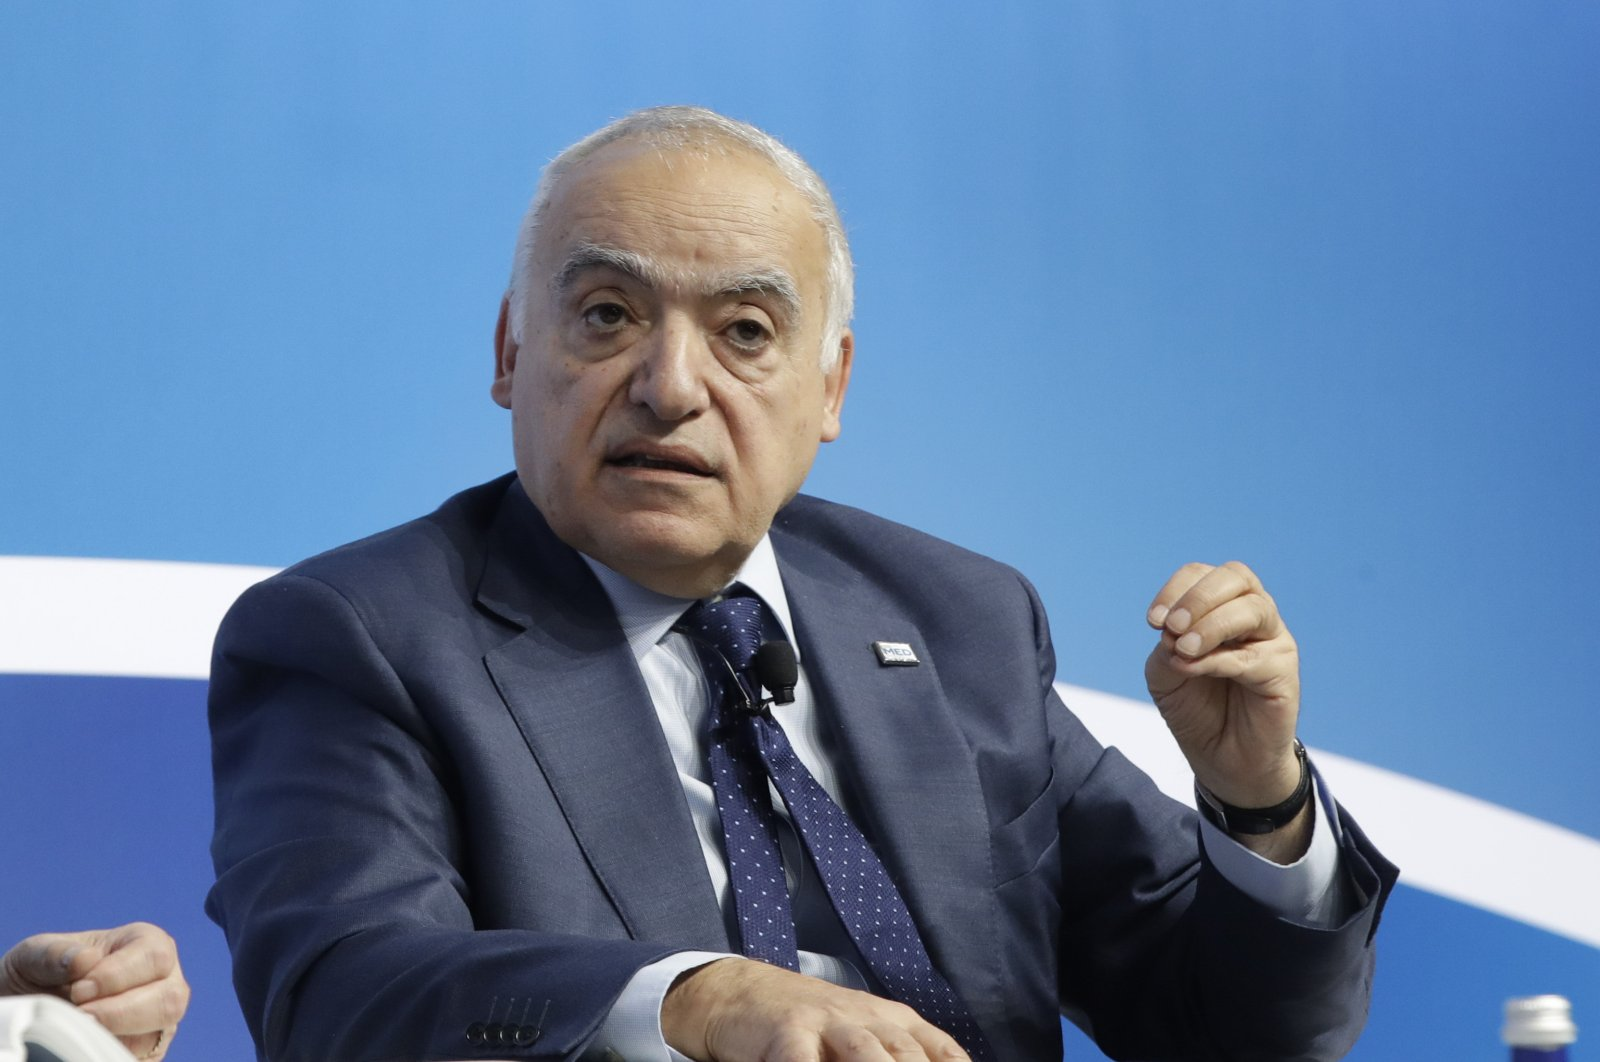 Then-U.N. special envoy to Libya Ghassan Salame speaks during the Mediterranean Dialogues conference in Rome, Italy, Dec. 7, 2019. (AP Photo)